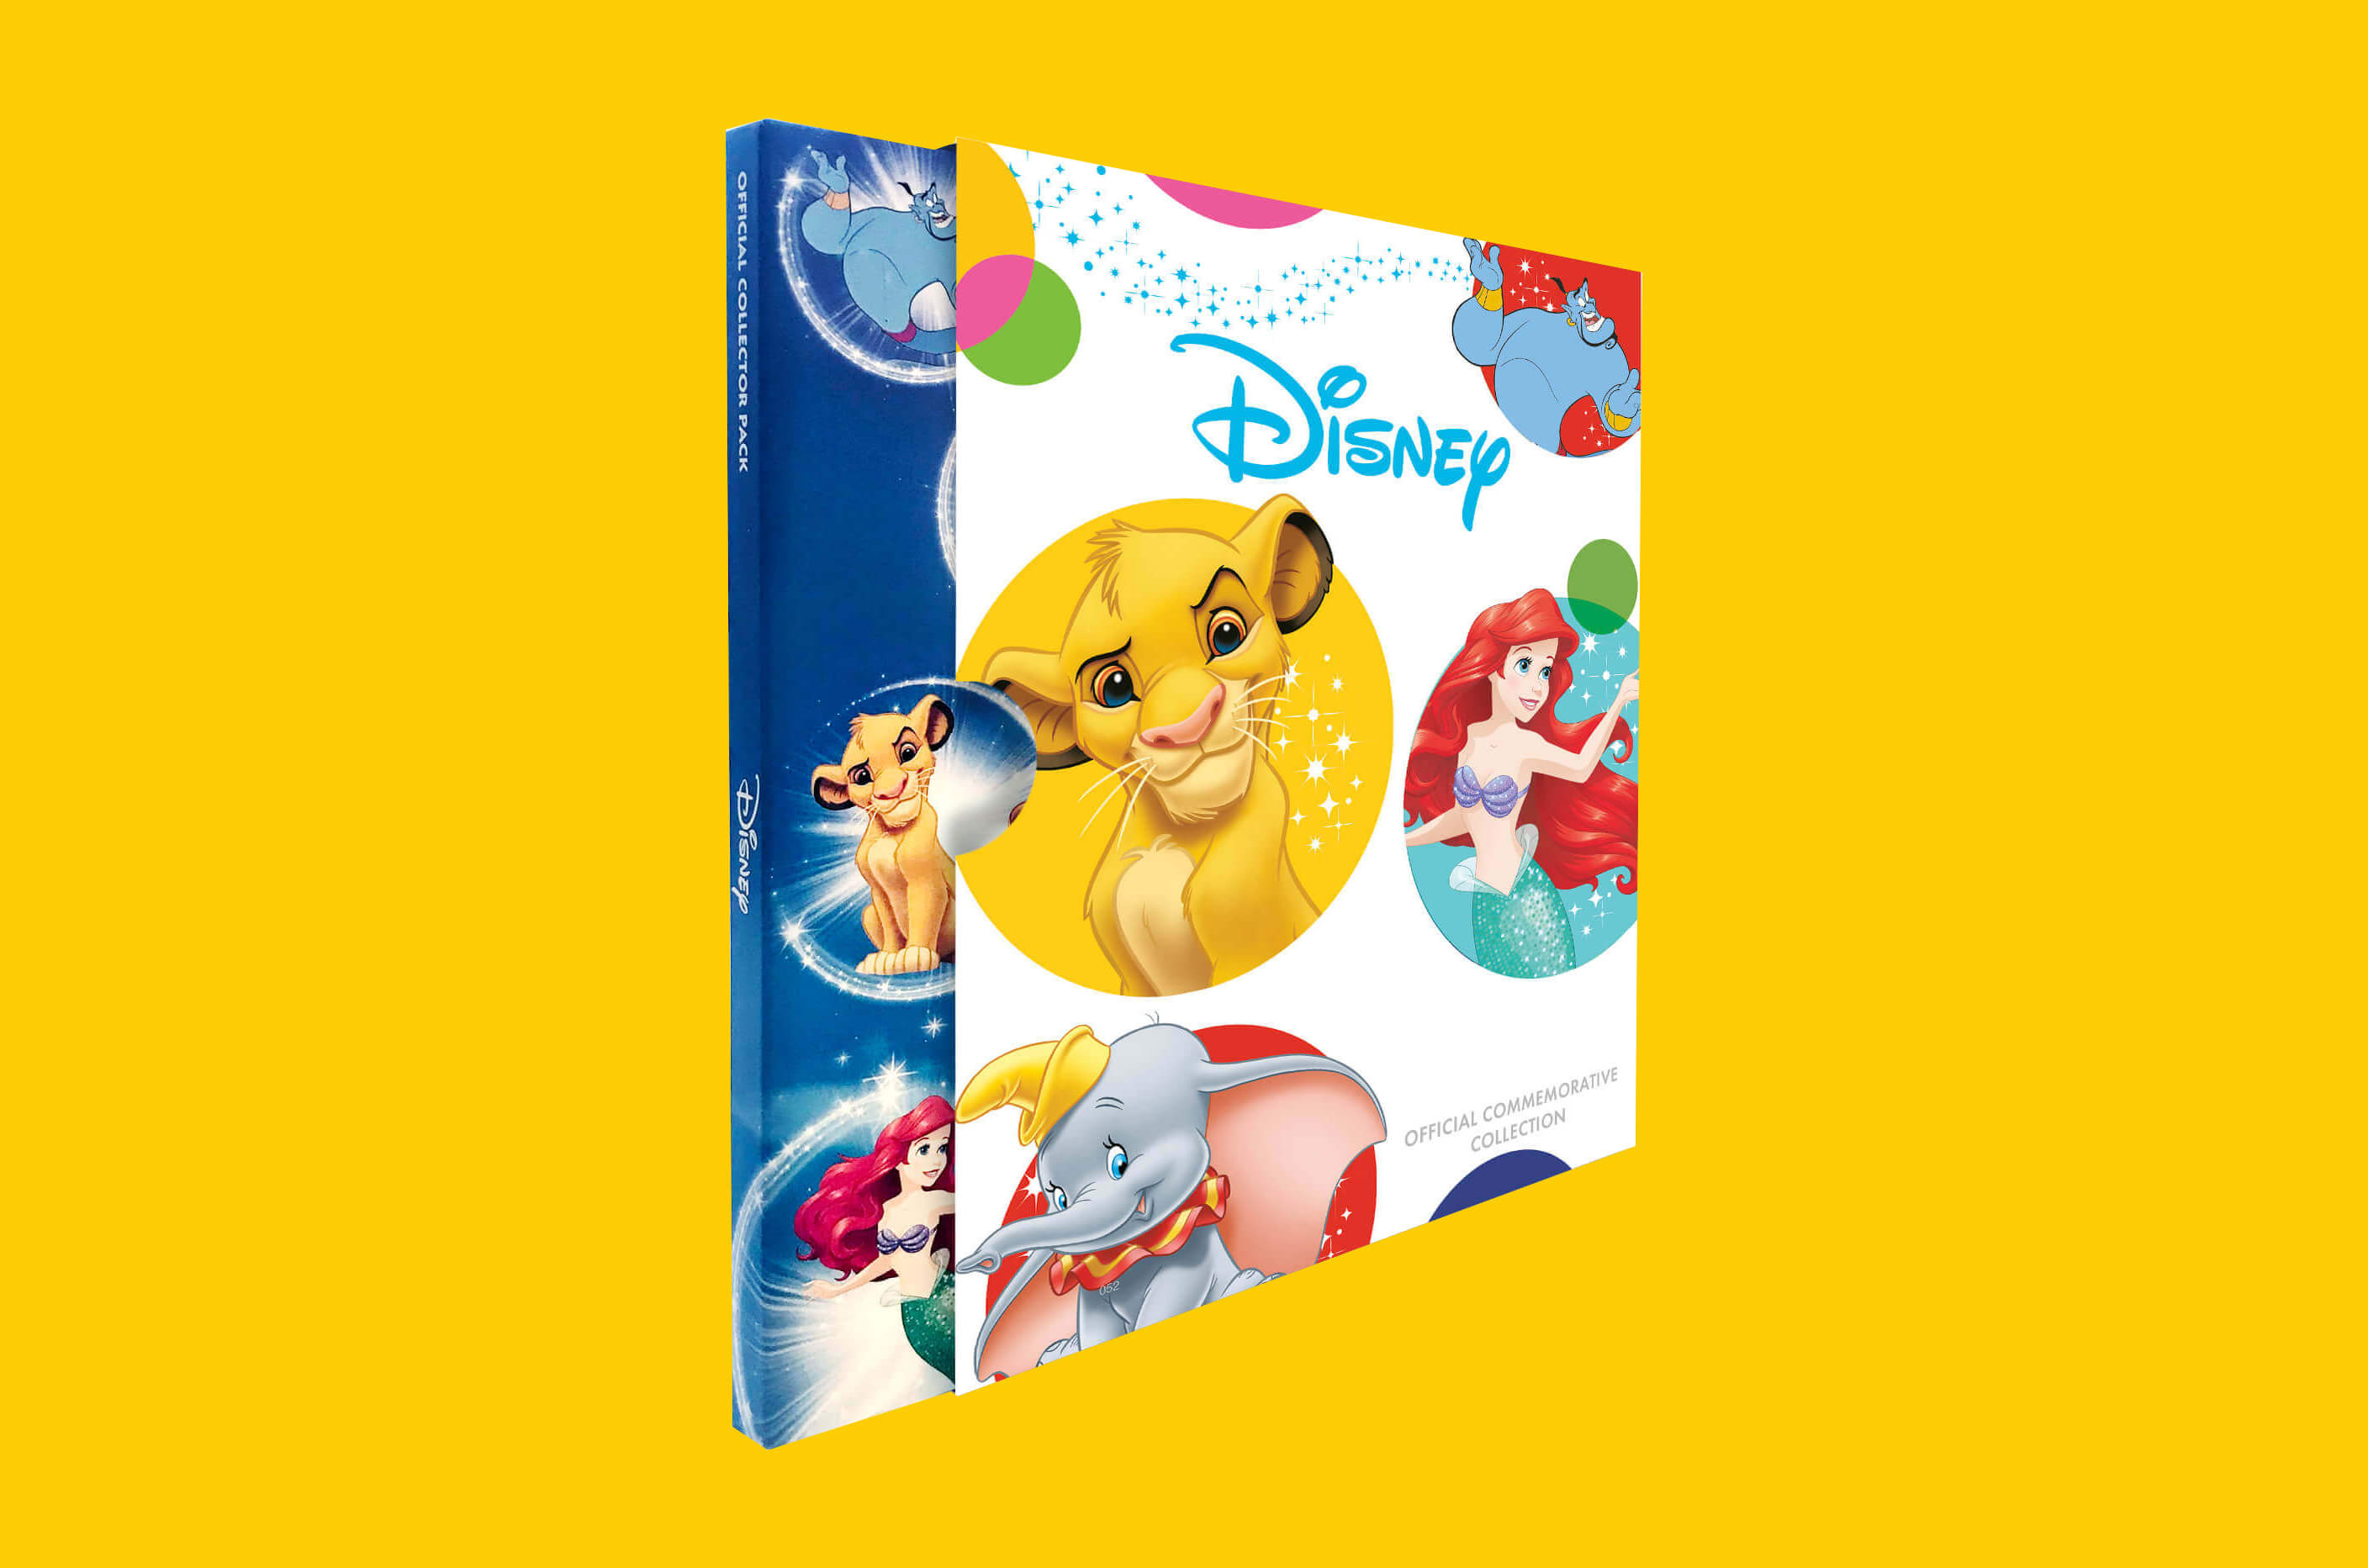 DISNEY MUNTEN COLLECTIE